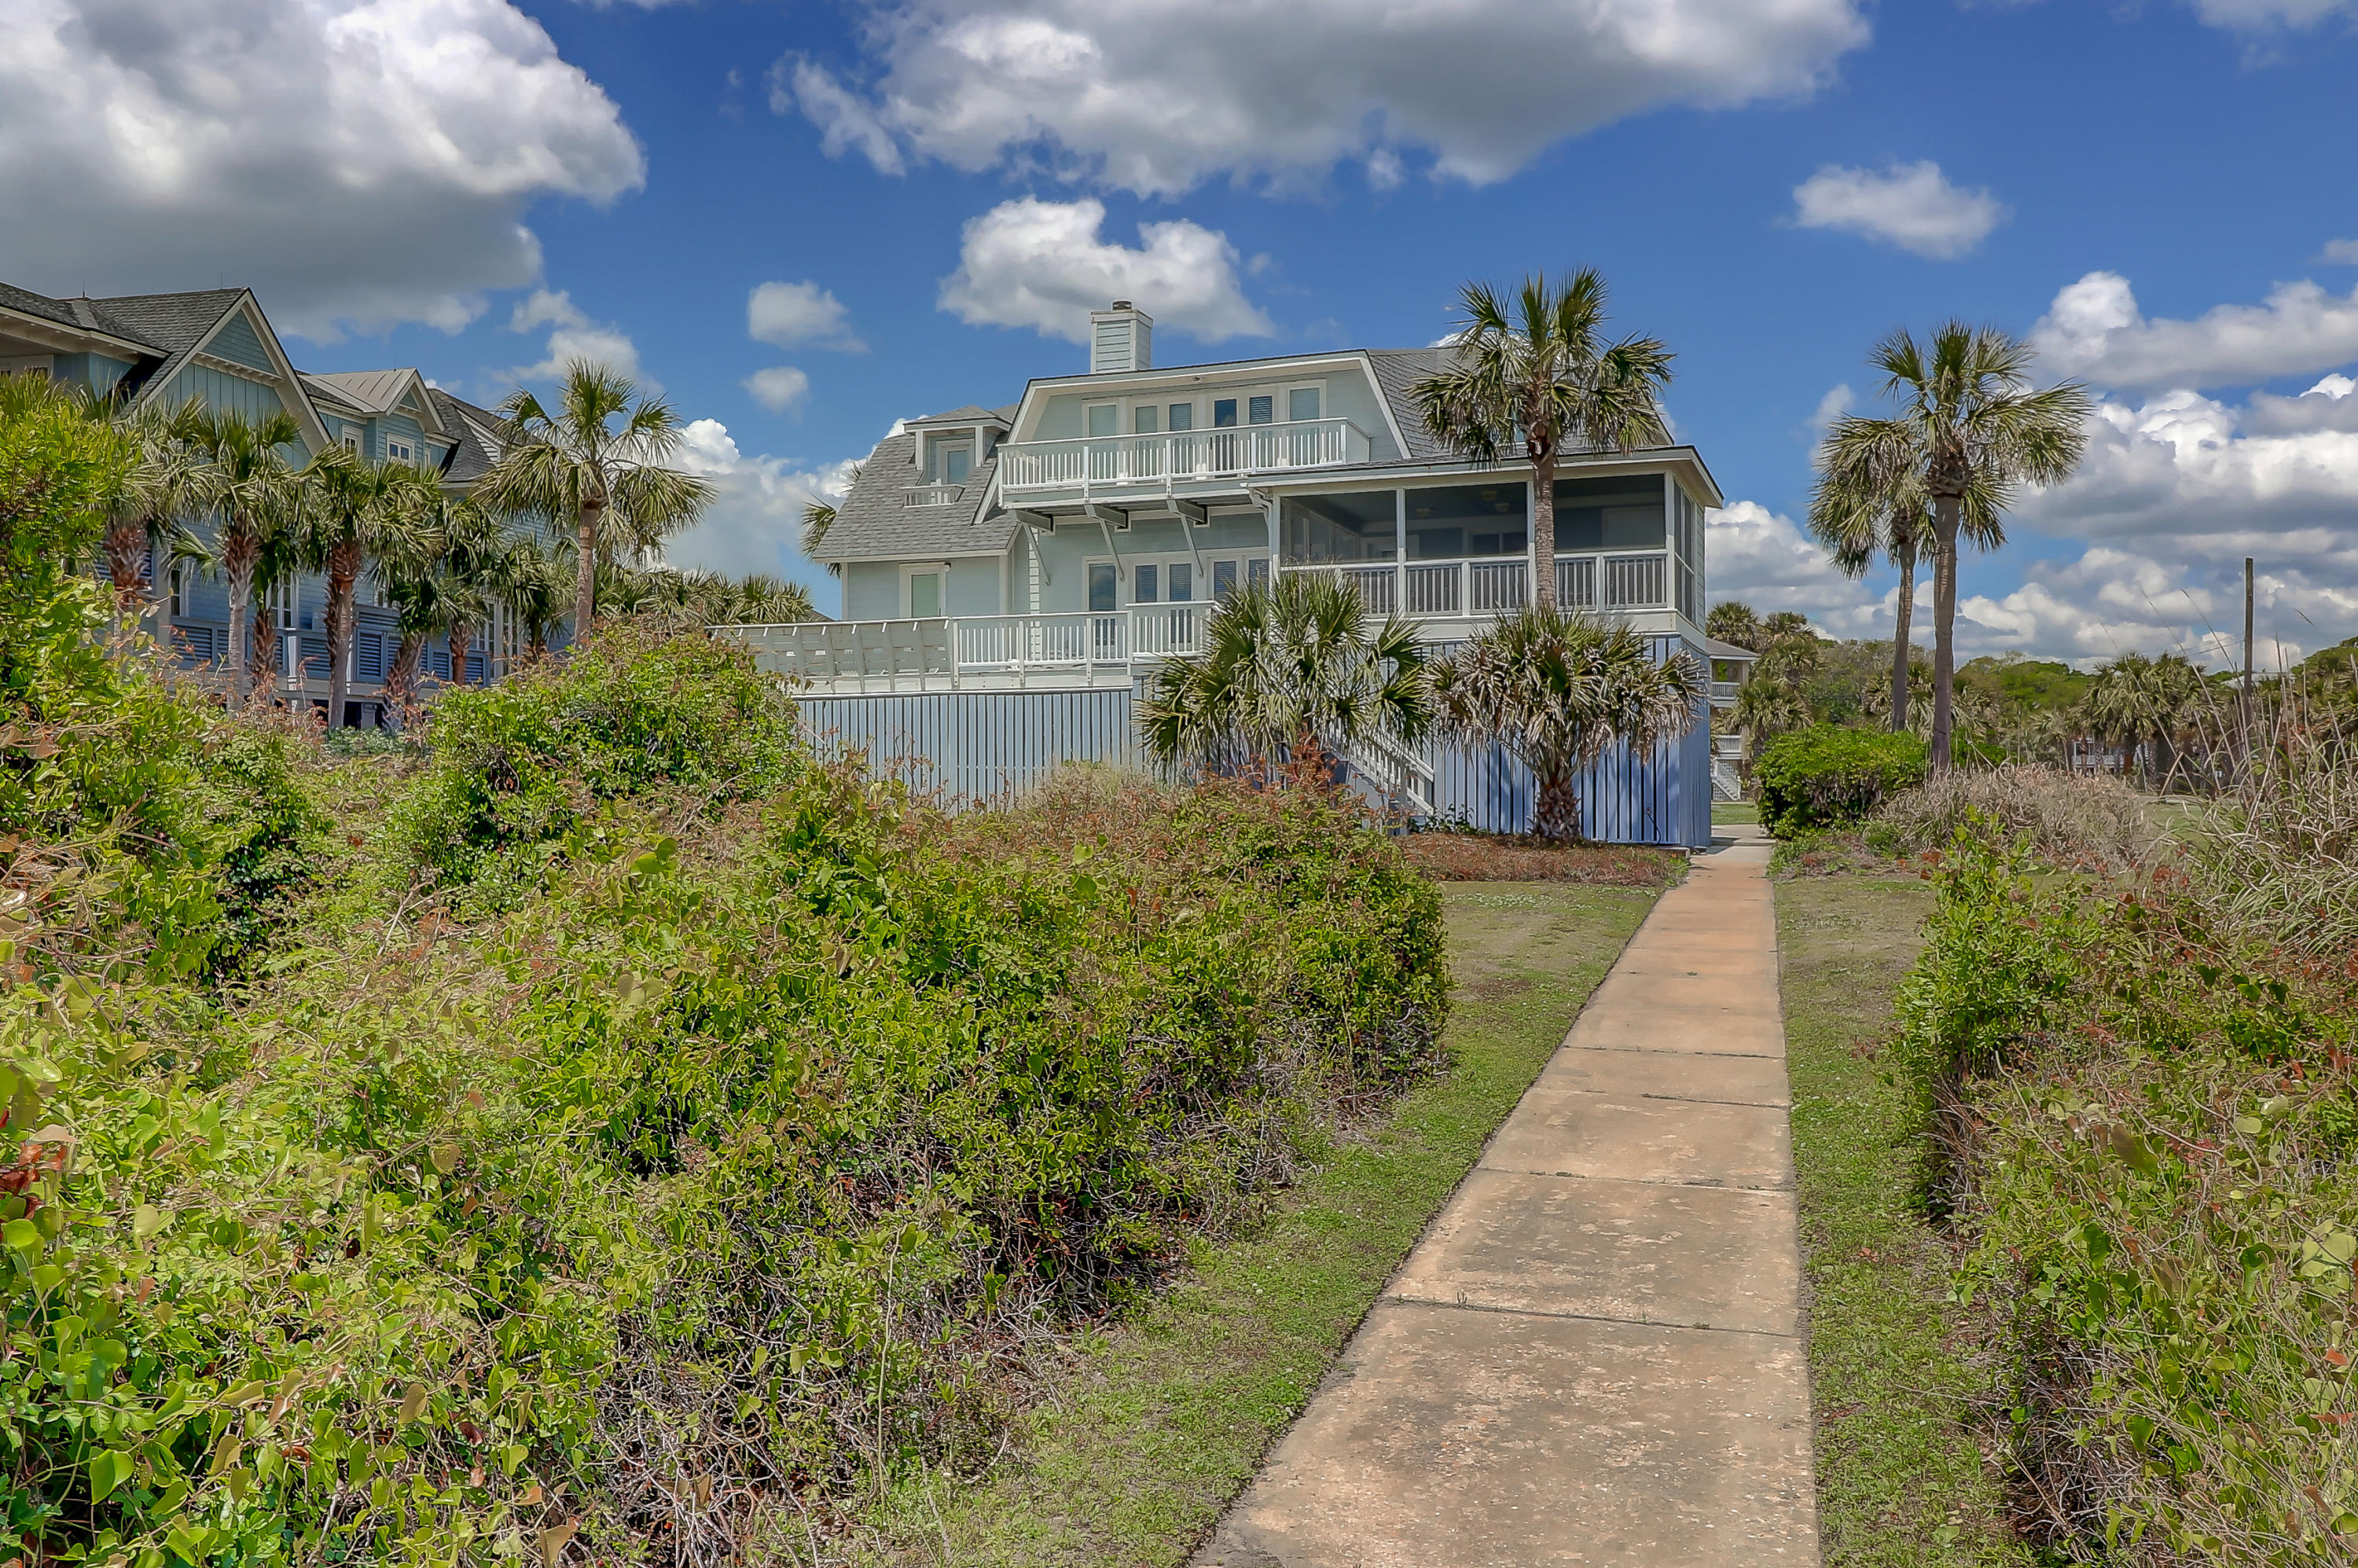 Isle of Palms Homes For Sale - 1 47th (1/13th), Isle of Palms, SC - 24